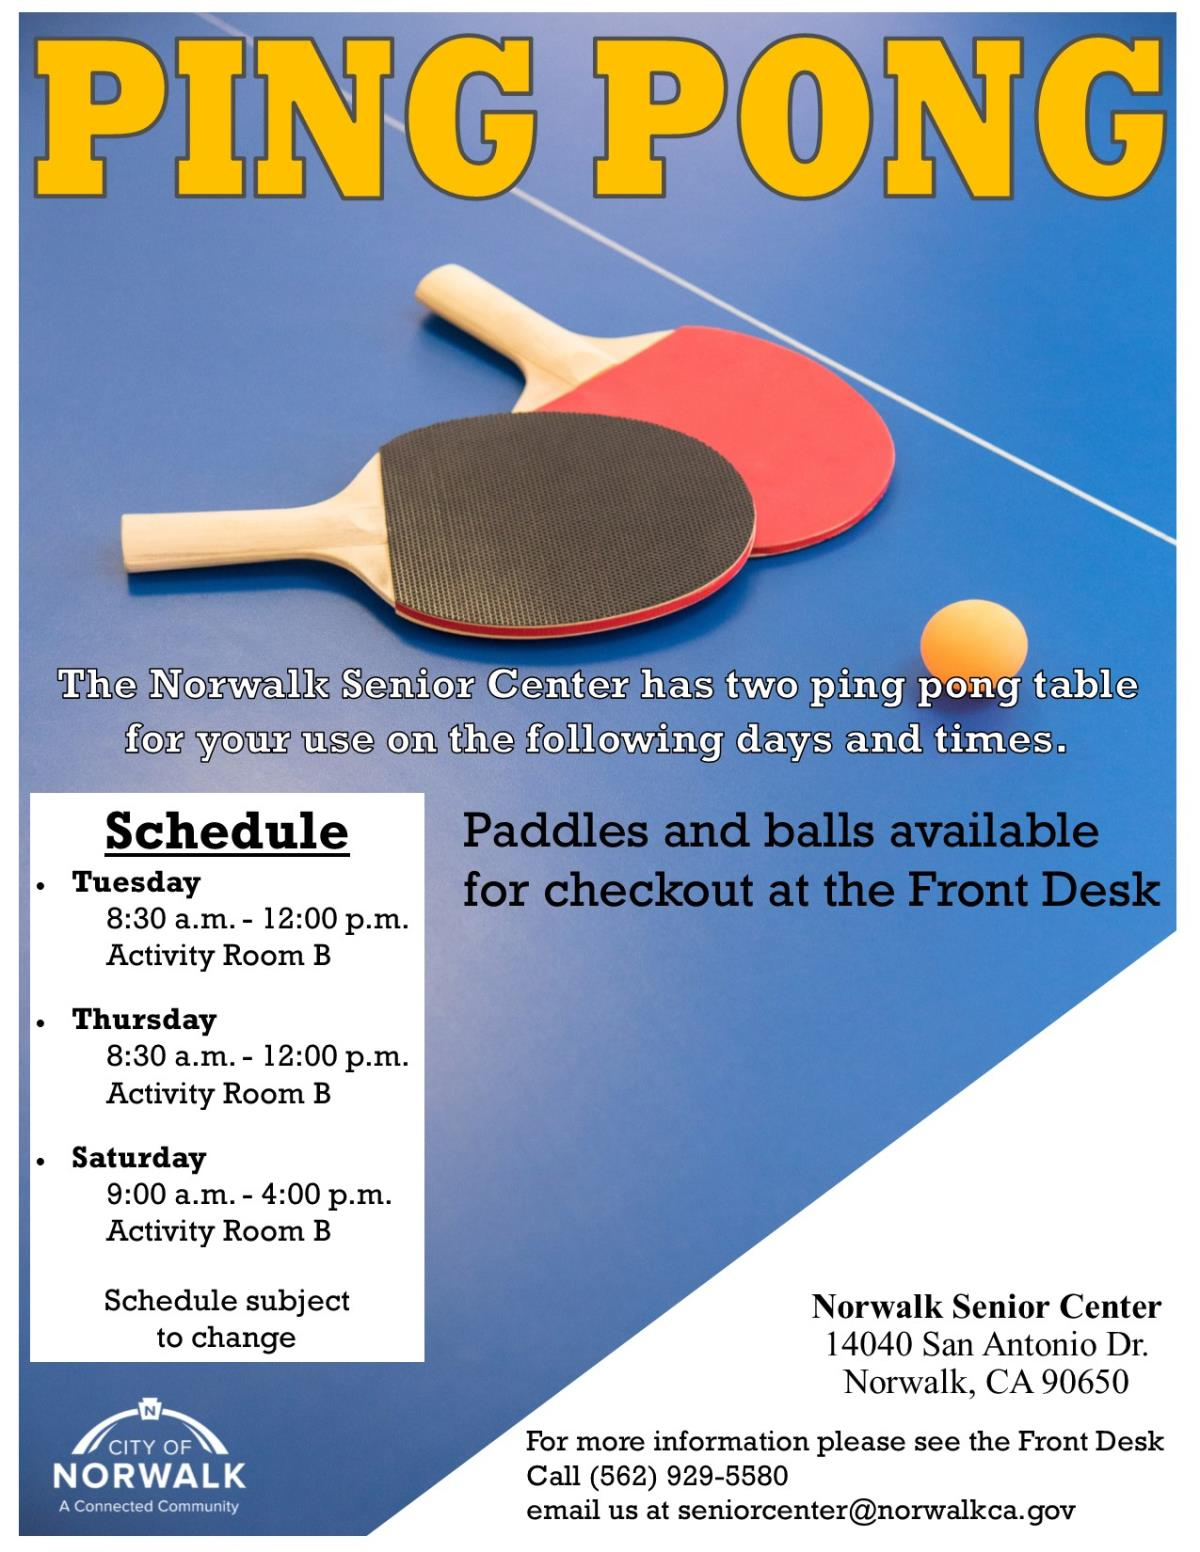 ping pong flier website.pub